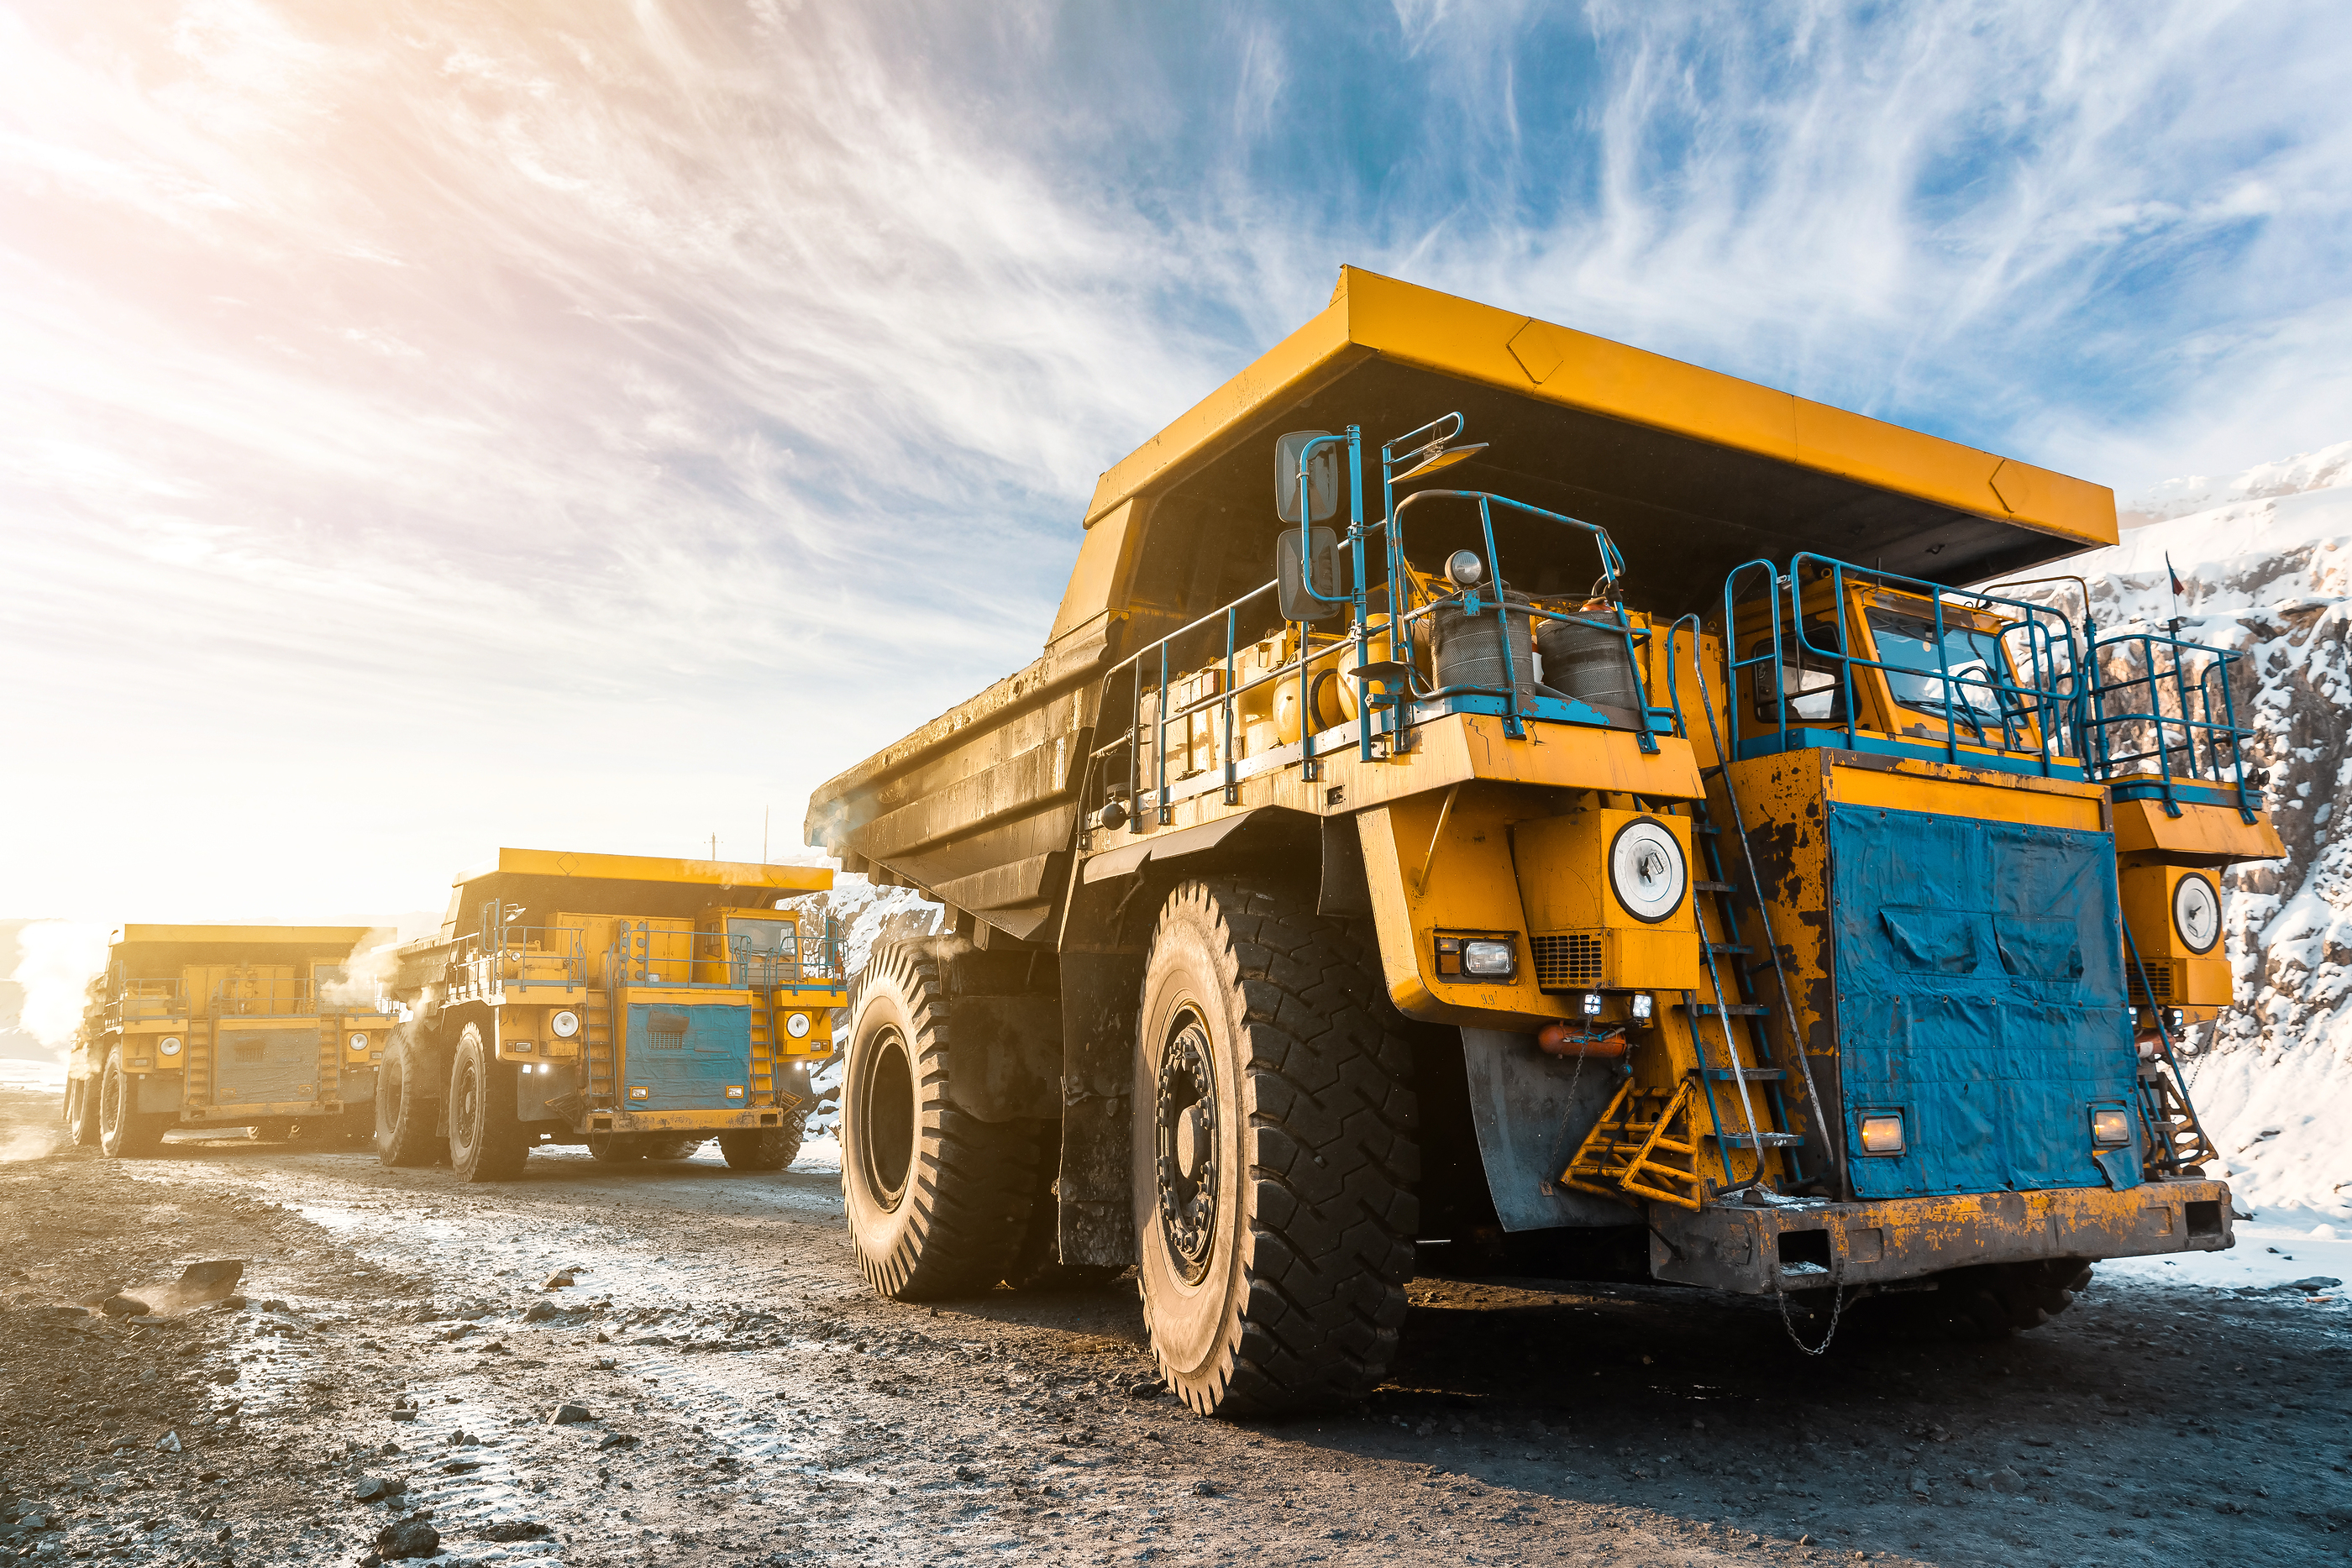 bigstock-Large-Quarry-Dump-Truck-Loadi-2